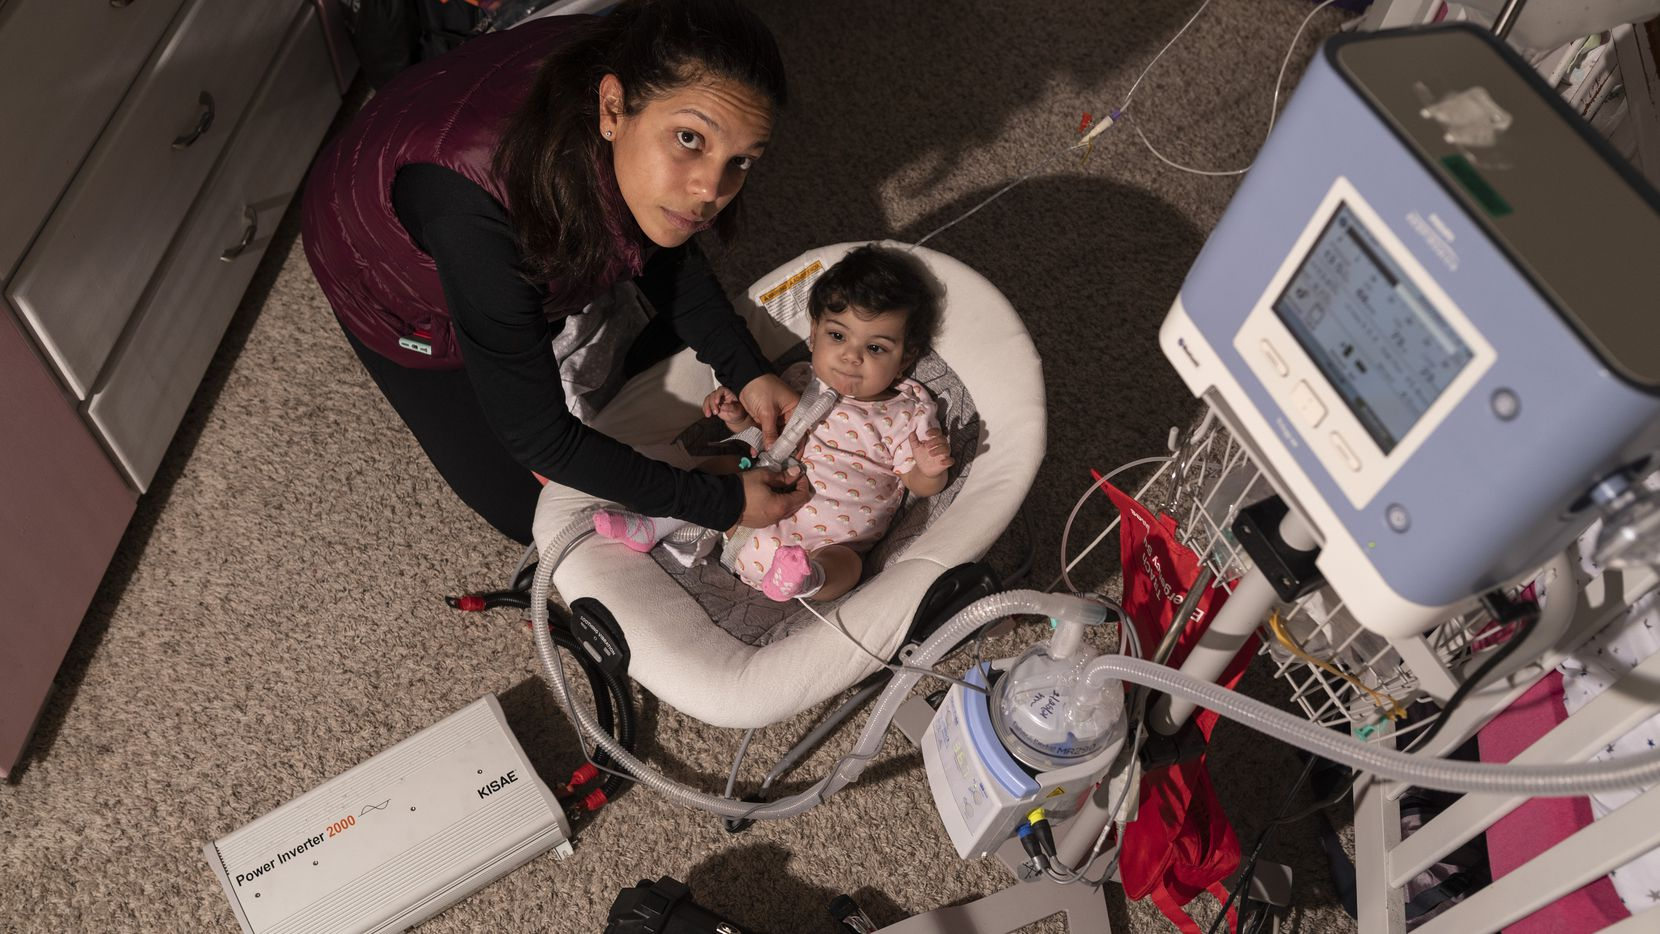 Said Rodriguez, 33, with her 1-year-old daughter Amanda Sedeño and the baby's breathing machine at her family's home in Plano, on Saturday, Feb. 27, 2021. Said lost access to water and electricity during last week's winter storm. She had to use a power converter connected to her car's battery to power her baby's breathing machine.